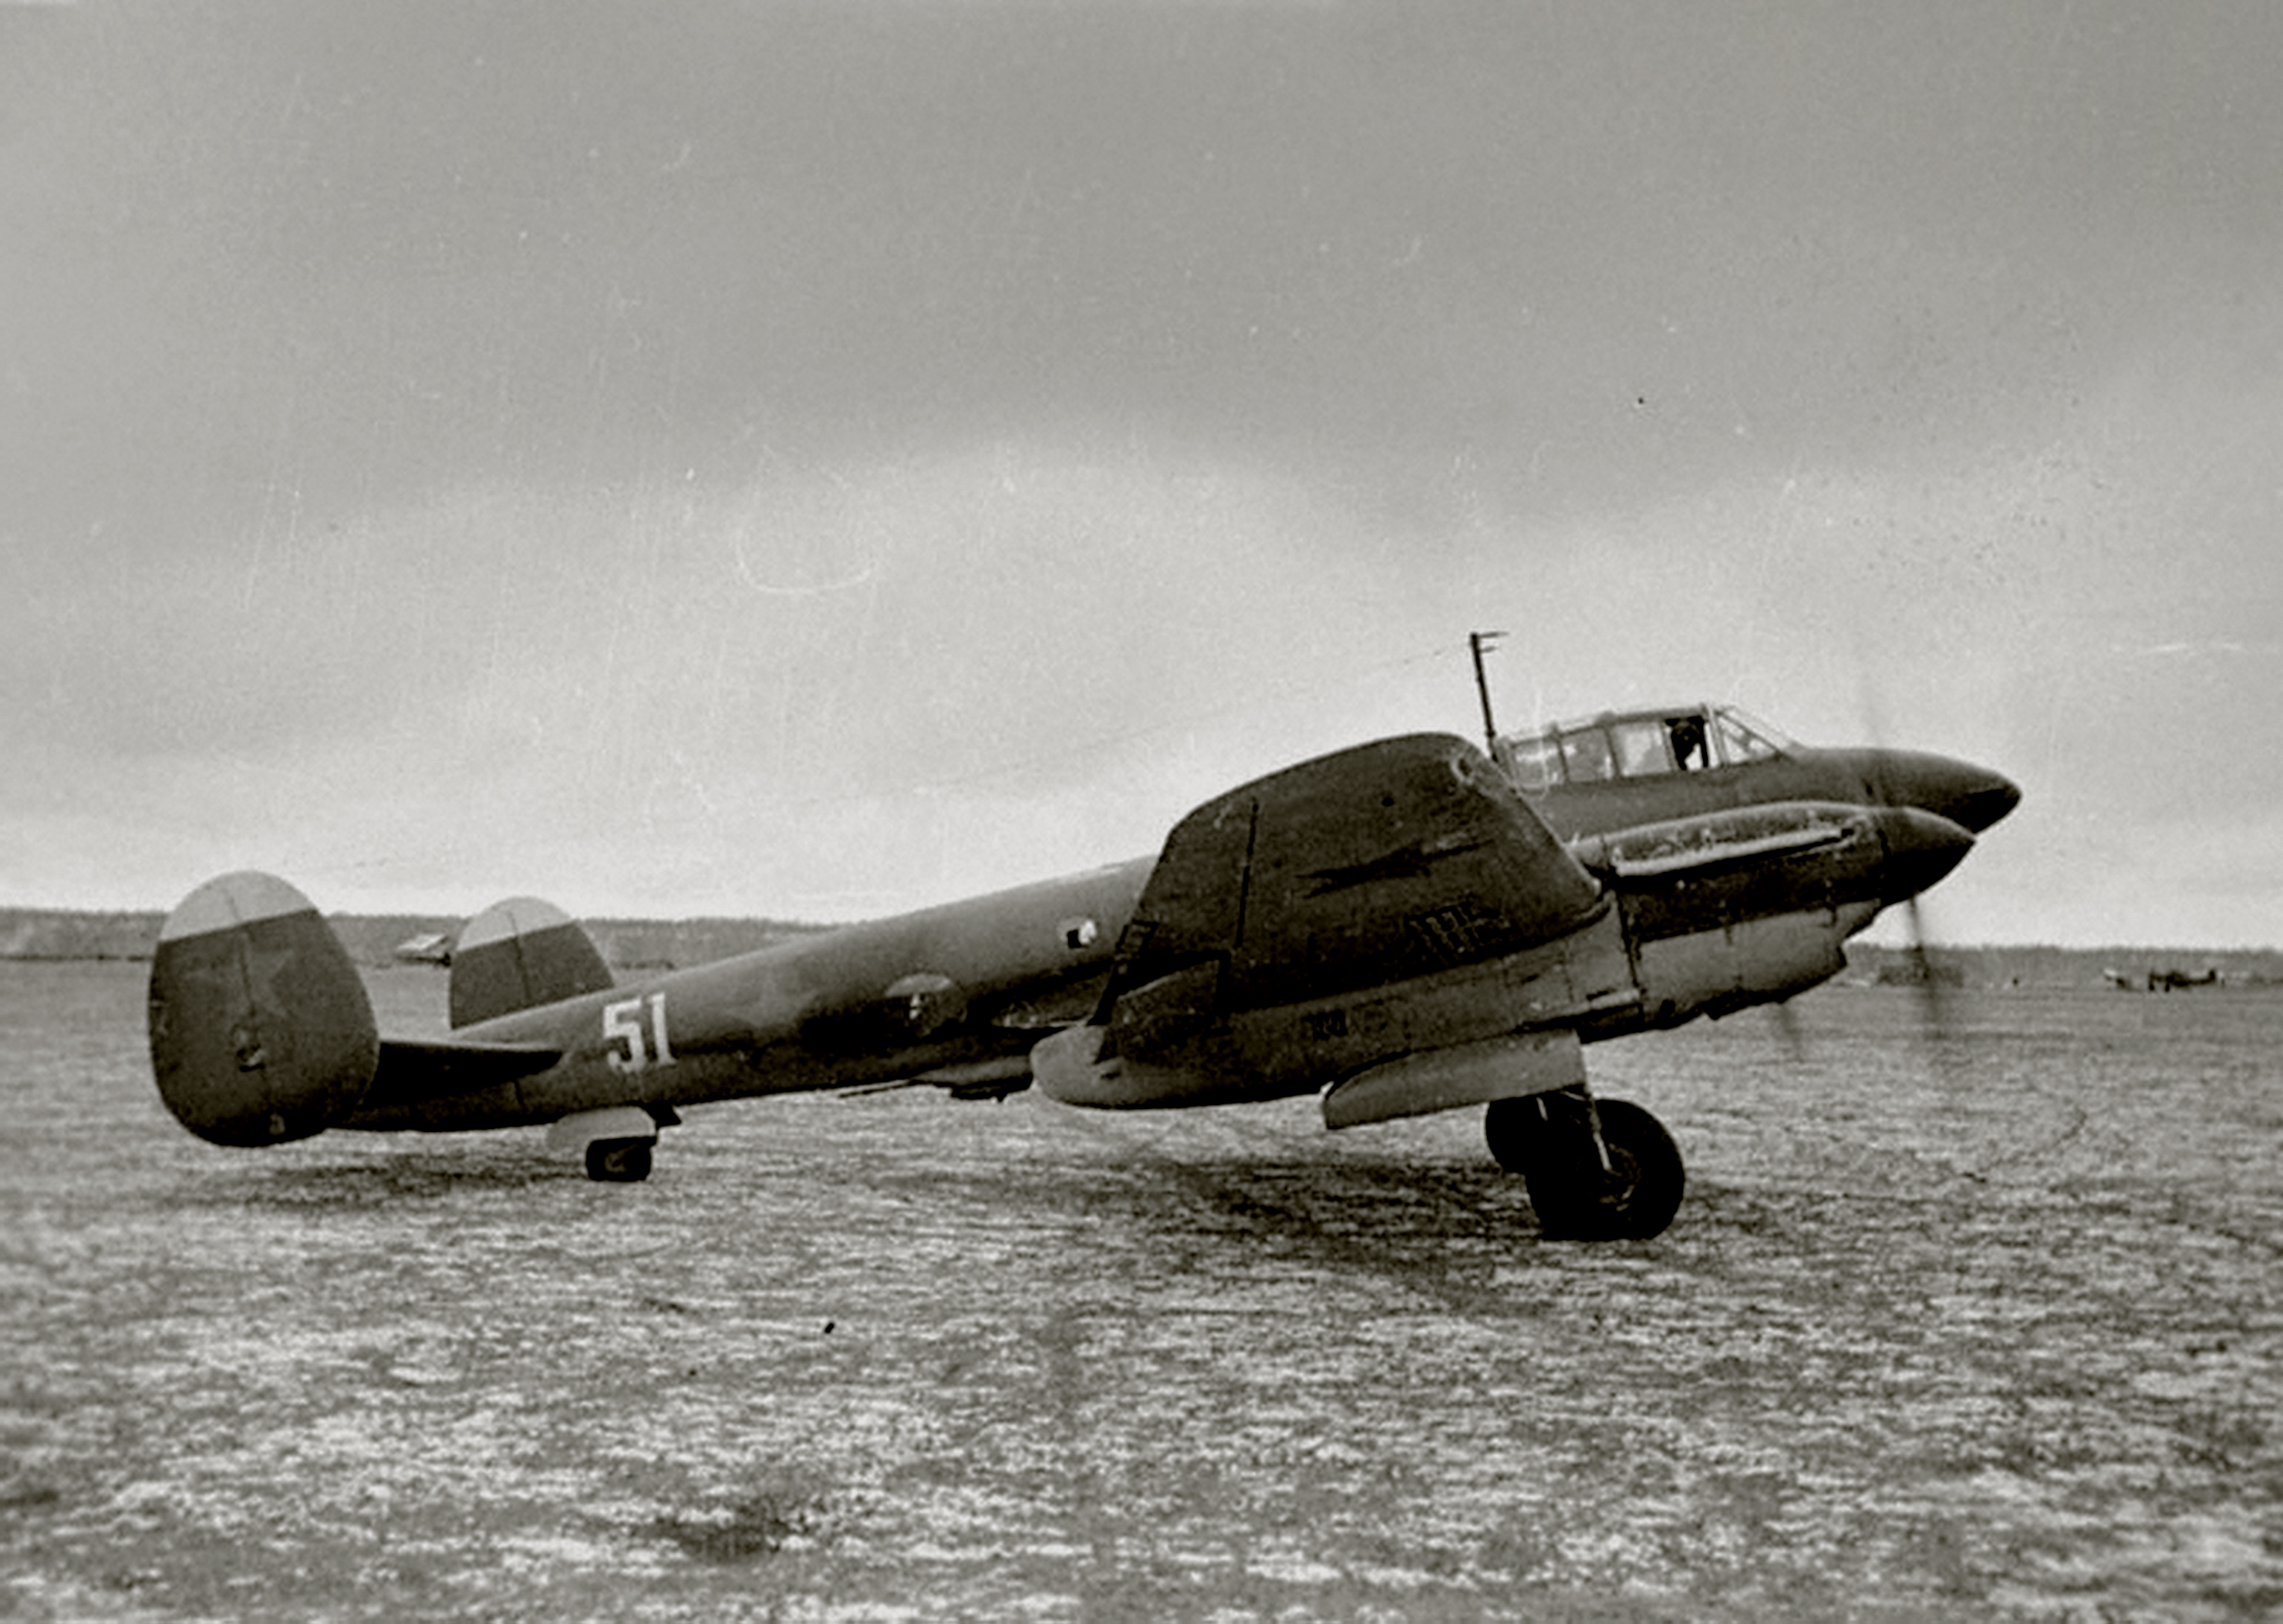 Petlyakov Pe 2 type 1 29BAP Northern Fleet White 51 and previous no Black 27 on the tail taxiing Russia 1944 01